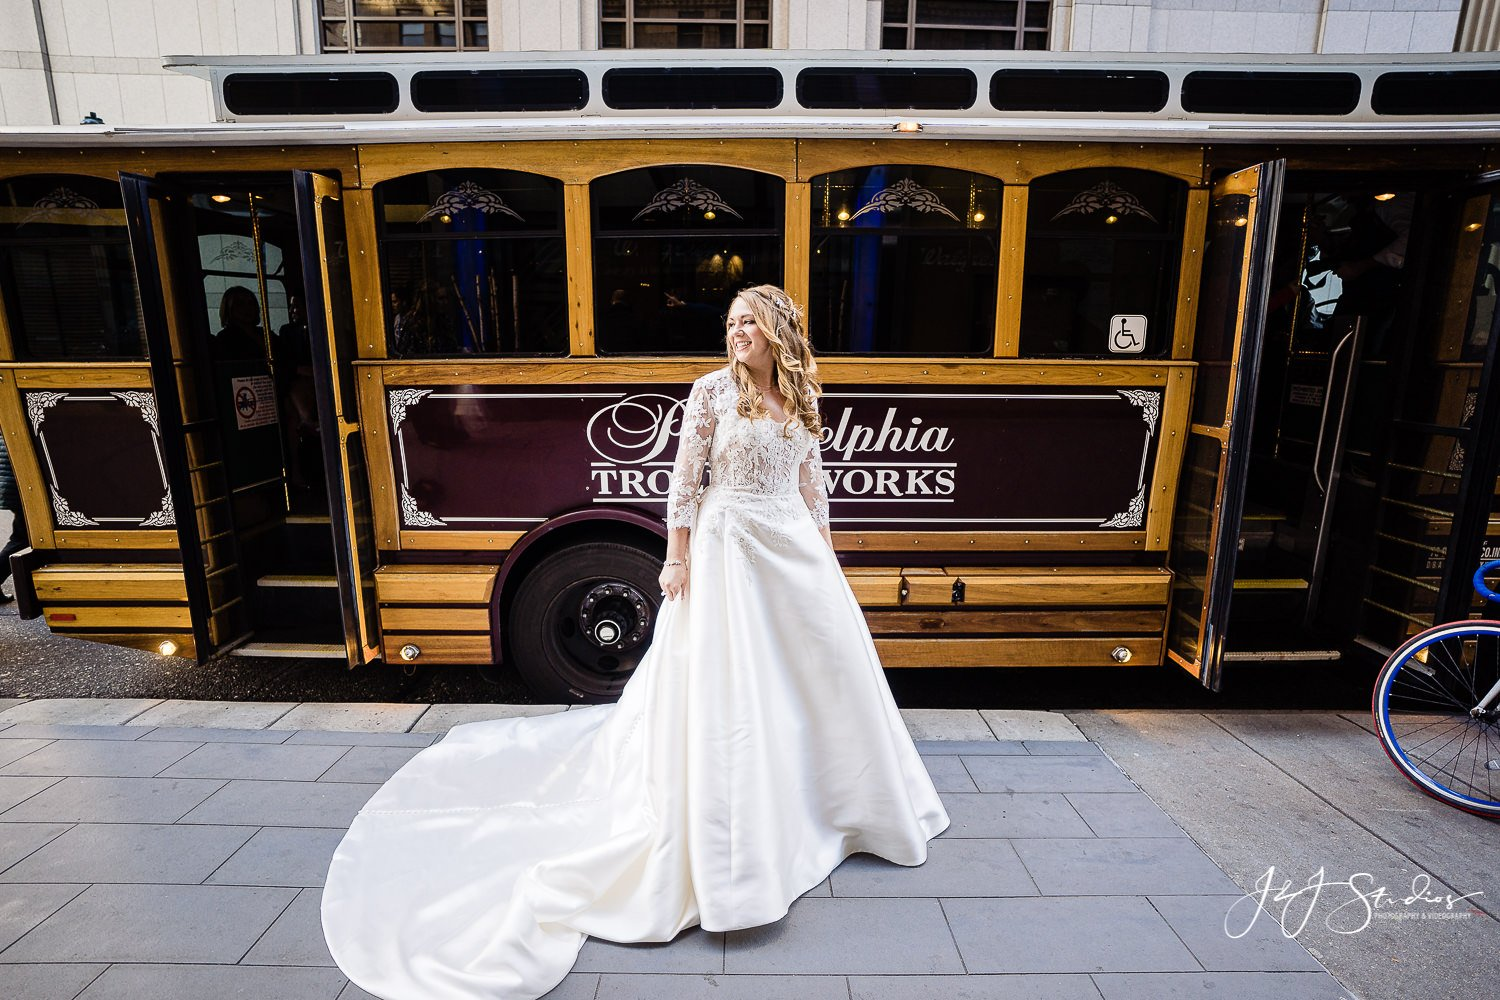 philadelphia trolley works bride